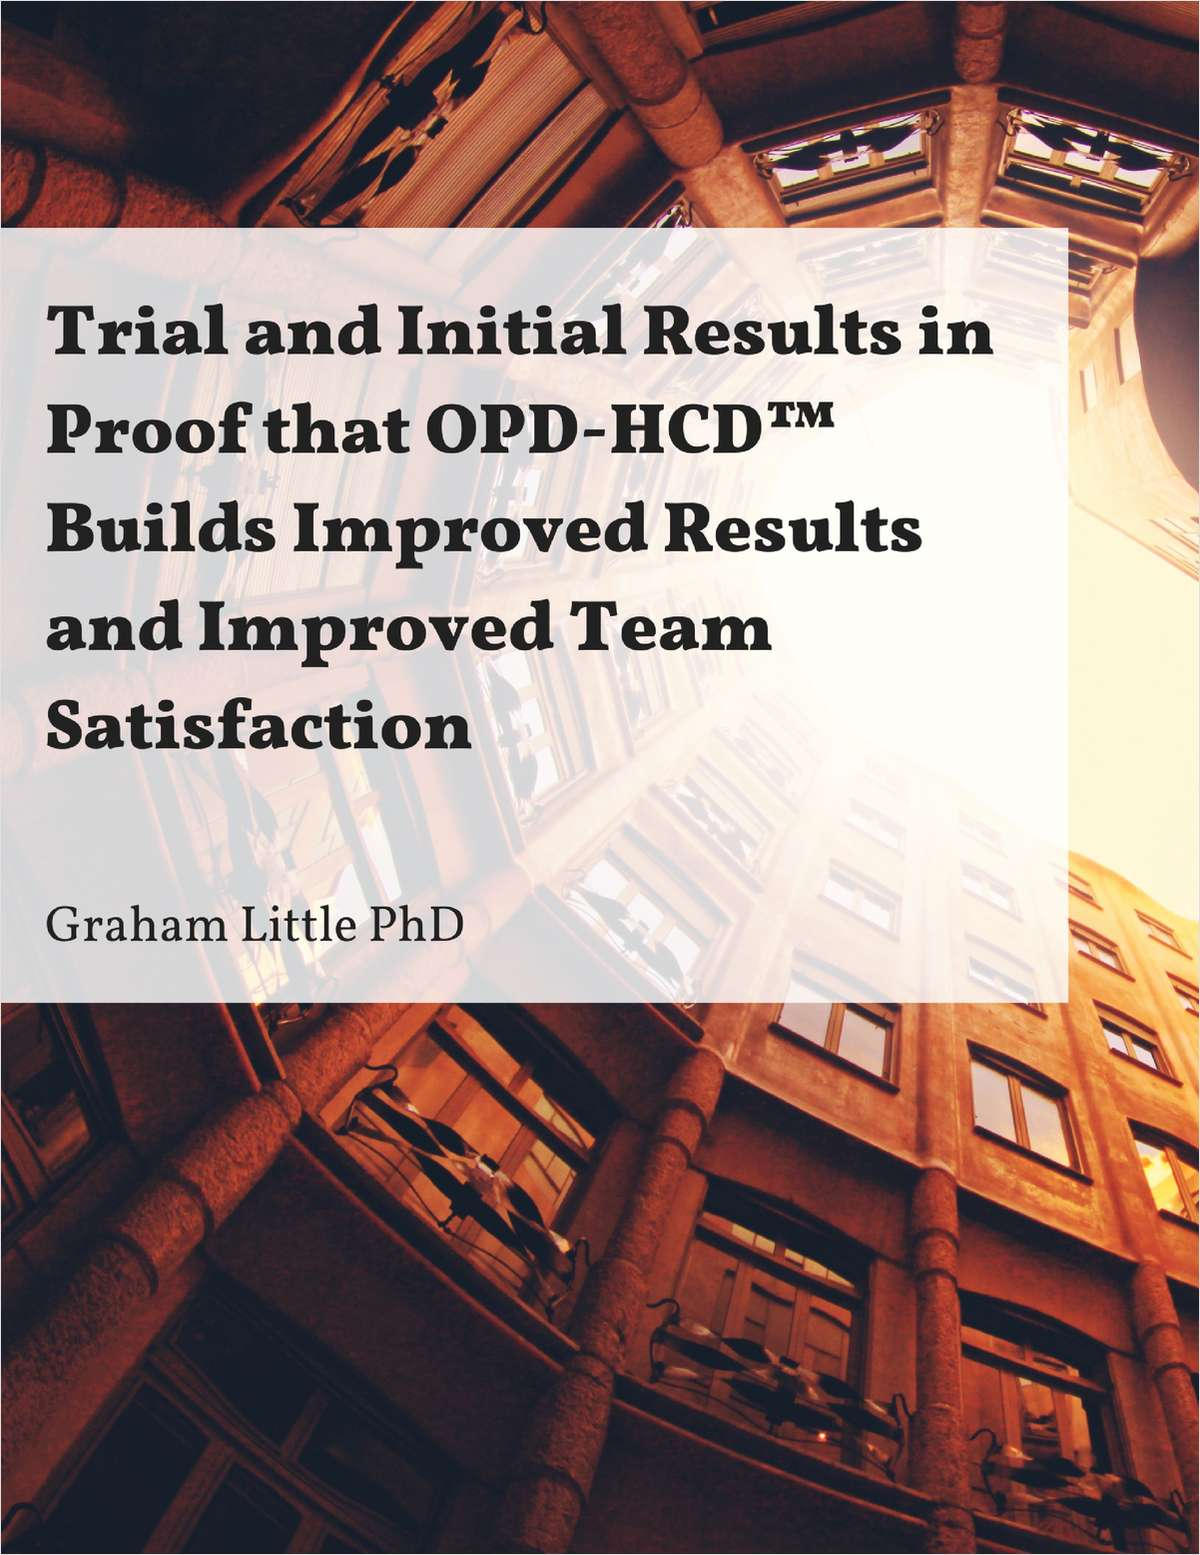 Trial and Initial Results in Proof that OPD-HCD™ Builds Improved Results and Improved Team Satisfaction